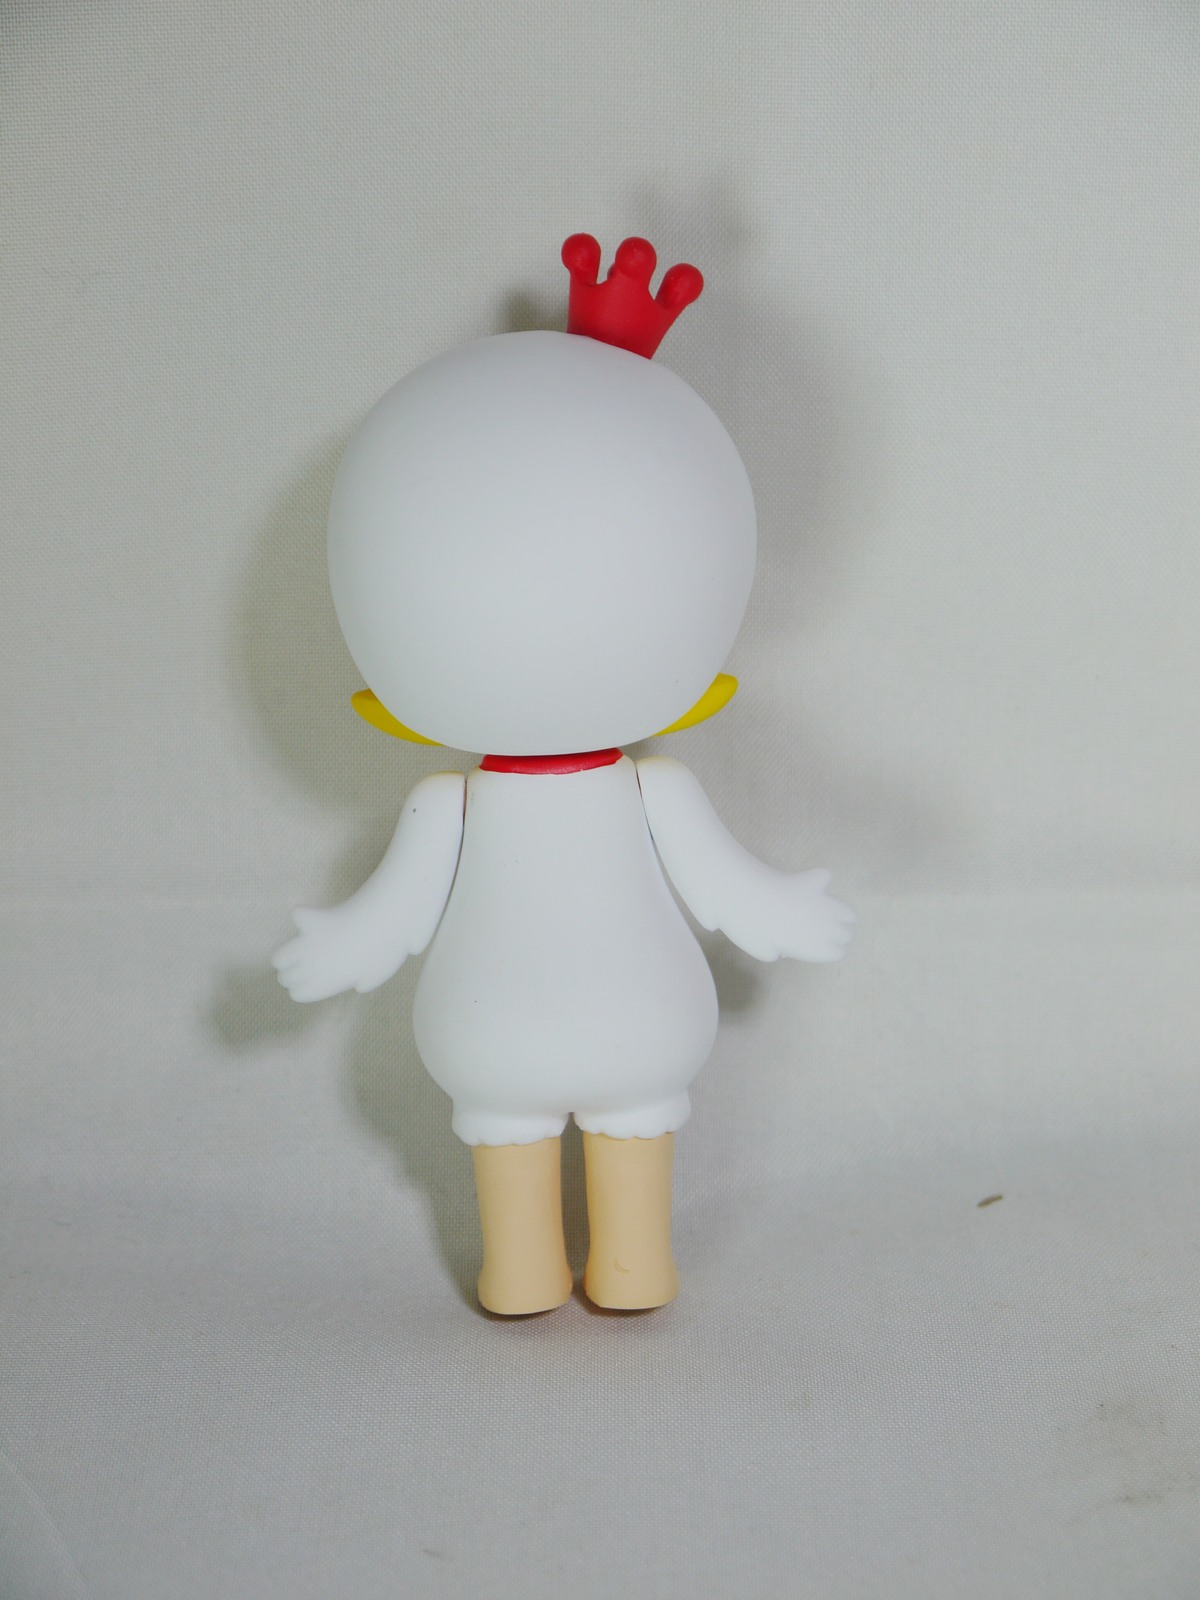 POP MART Kennyswork BLOCK Little Molly Chinese Zodiac Rooster White Minifigure